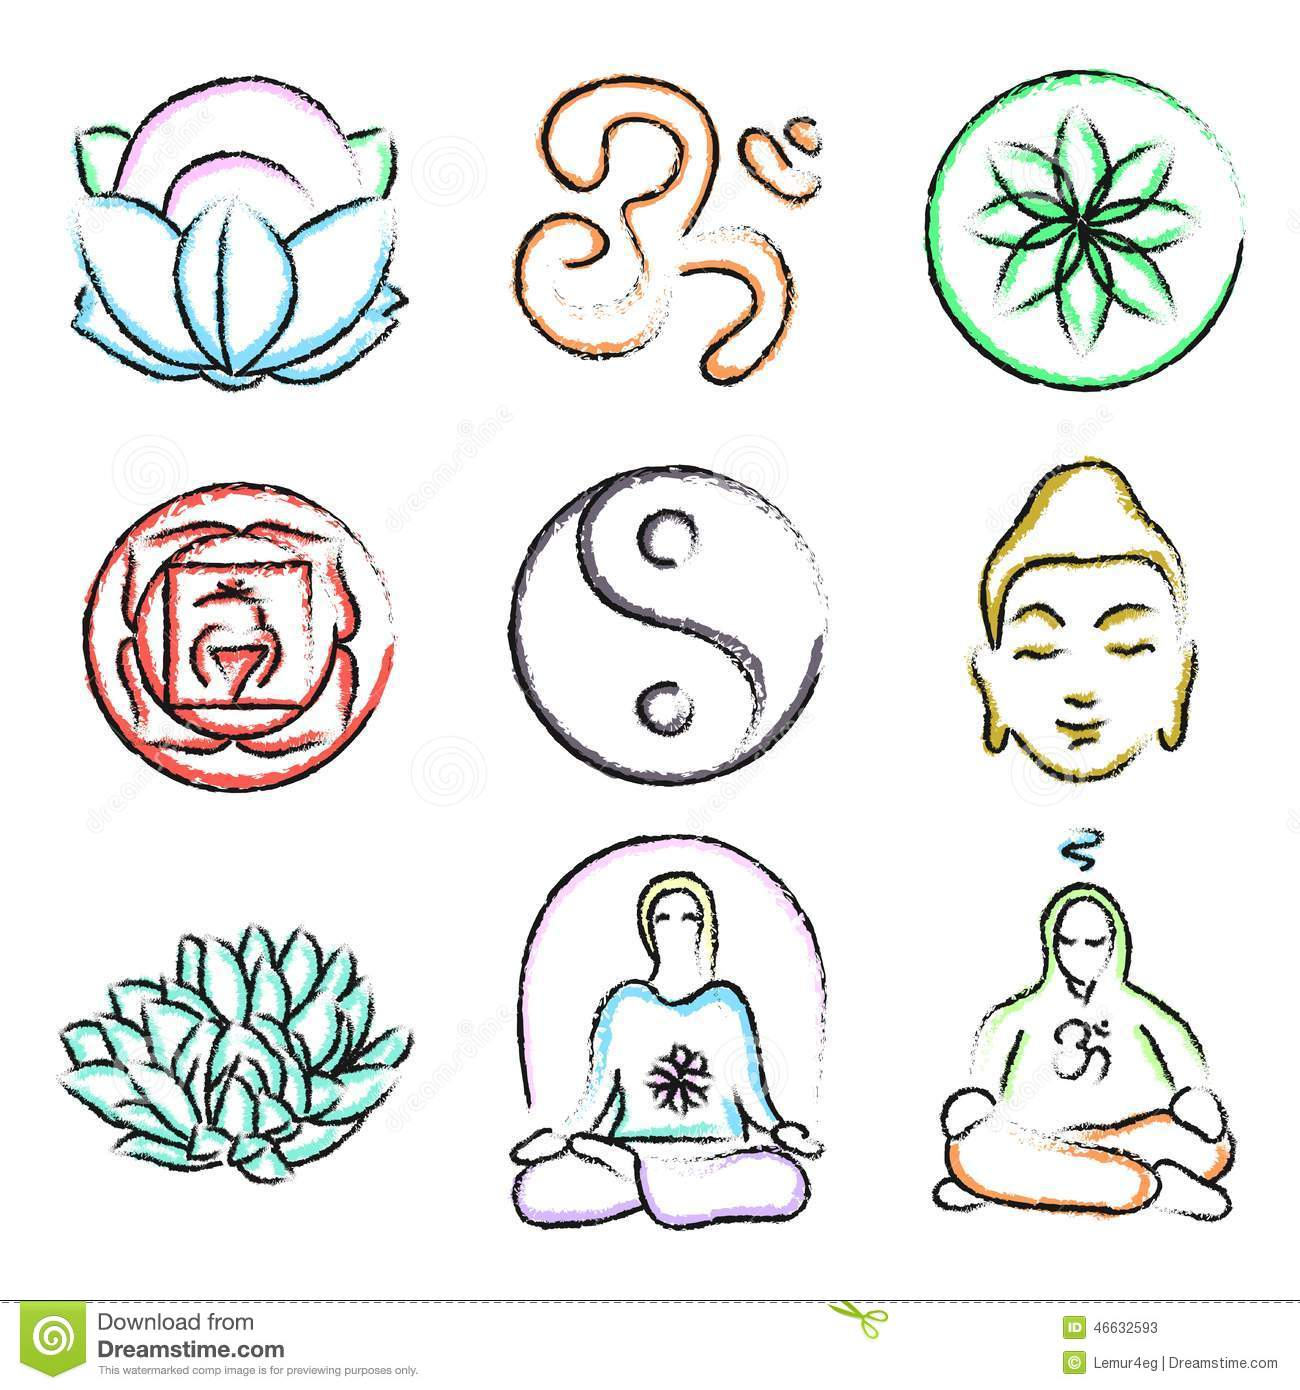 Doodle icons of yoga stock vector. Image of contour ...